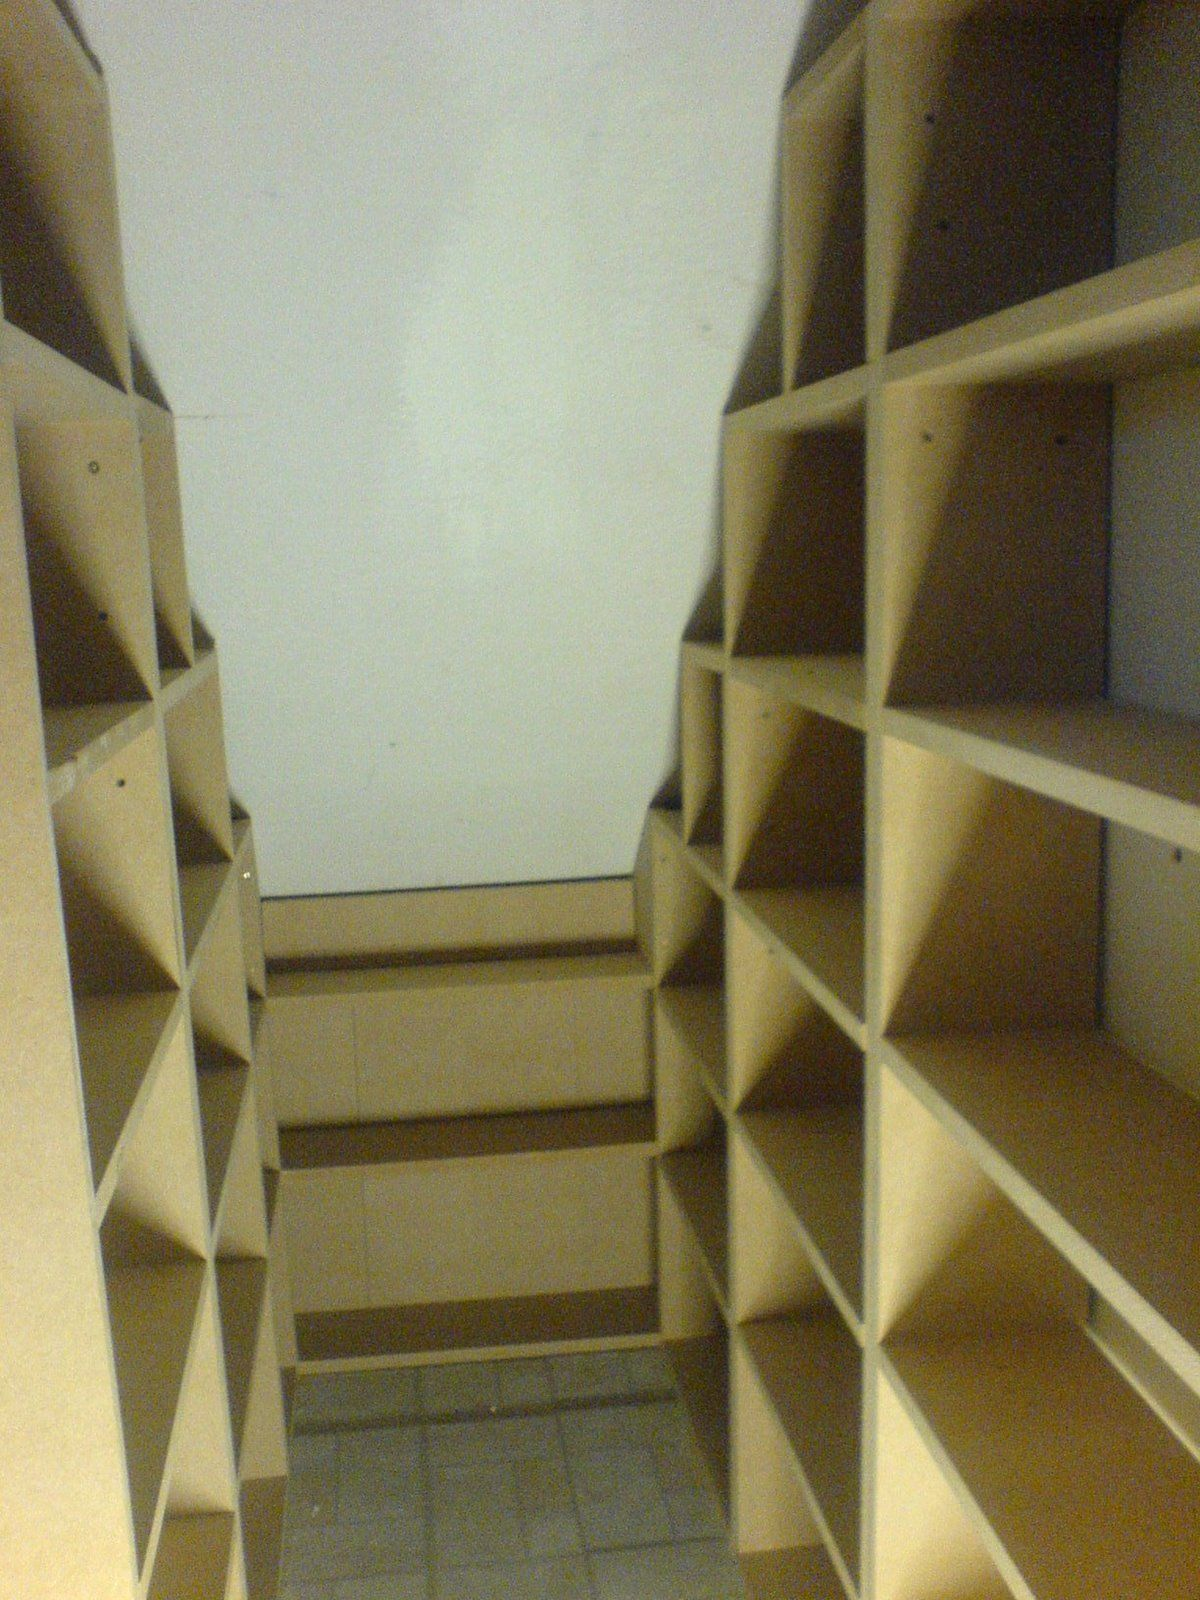 Stair Renovation Solutions In The Process Of Creating A Big Storage Cupboard Under The Attic